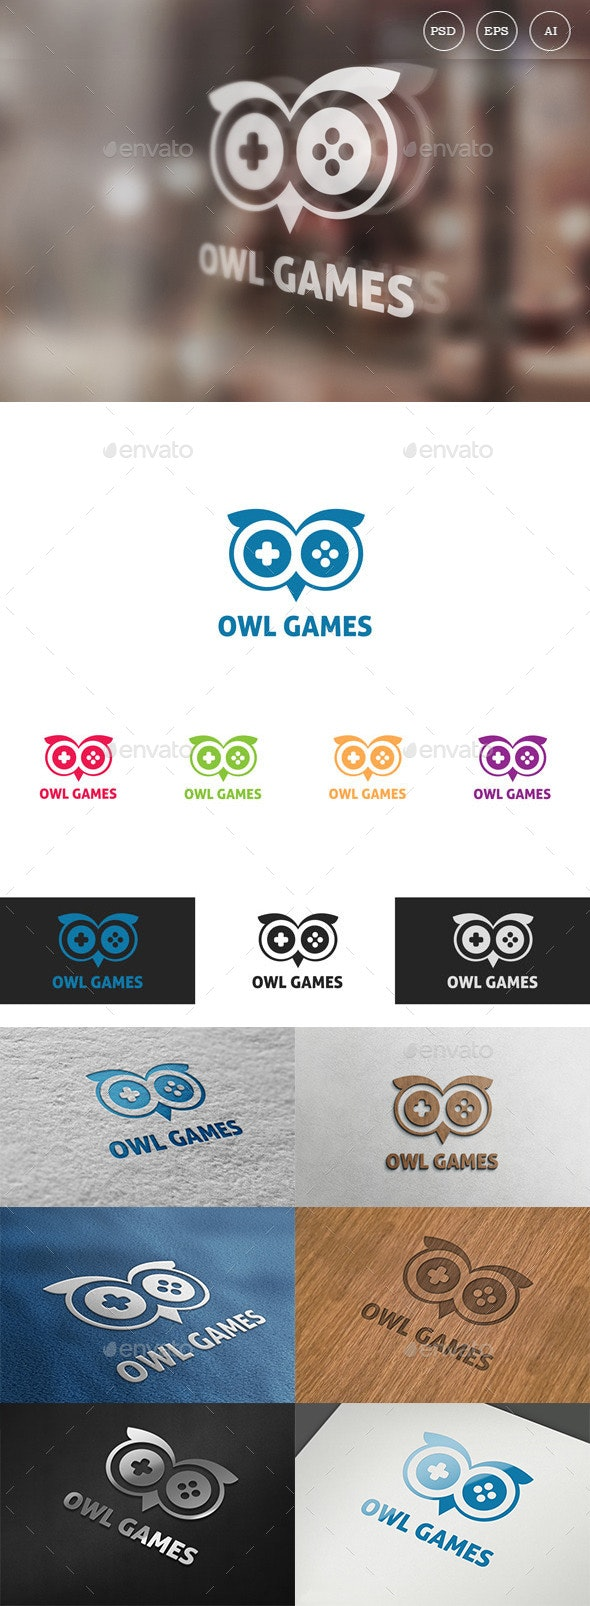 Owl Games Logo - Animals Logo Templates